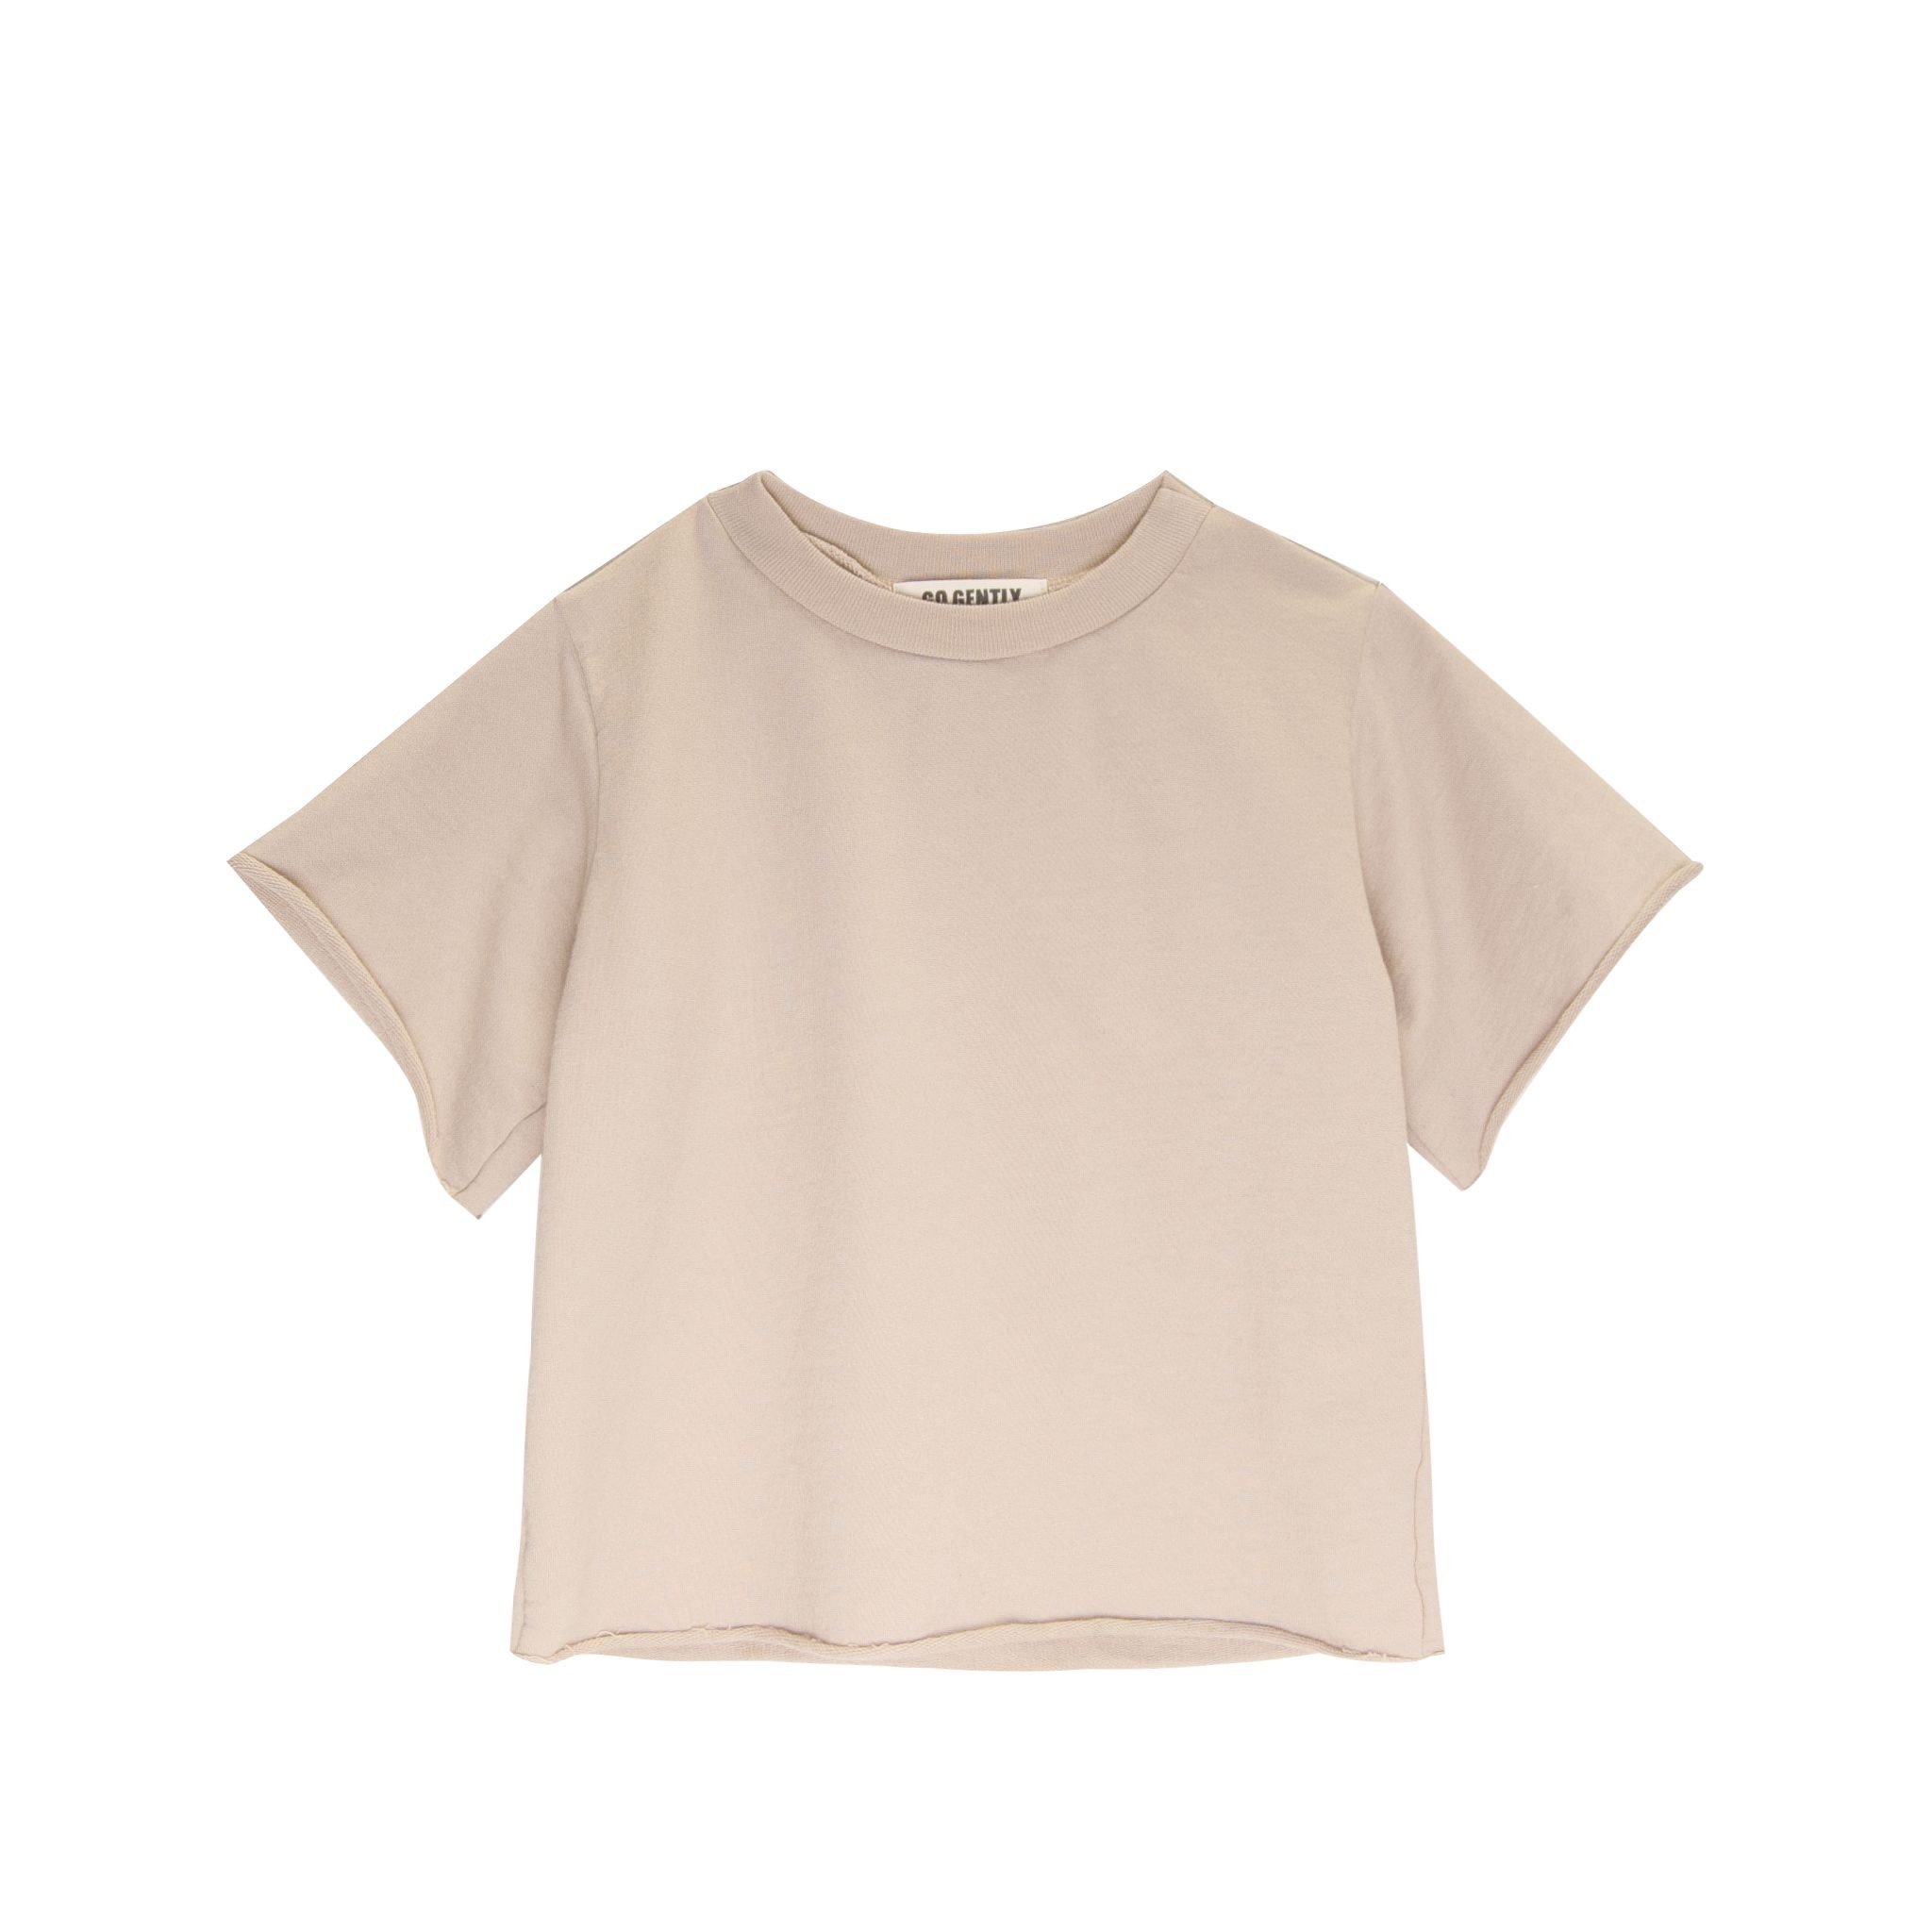 GOGENTLYNATION French Terry Tee